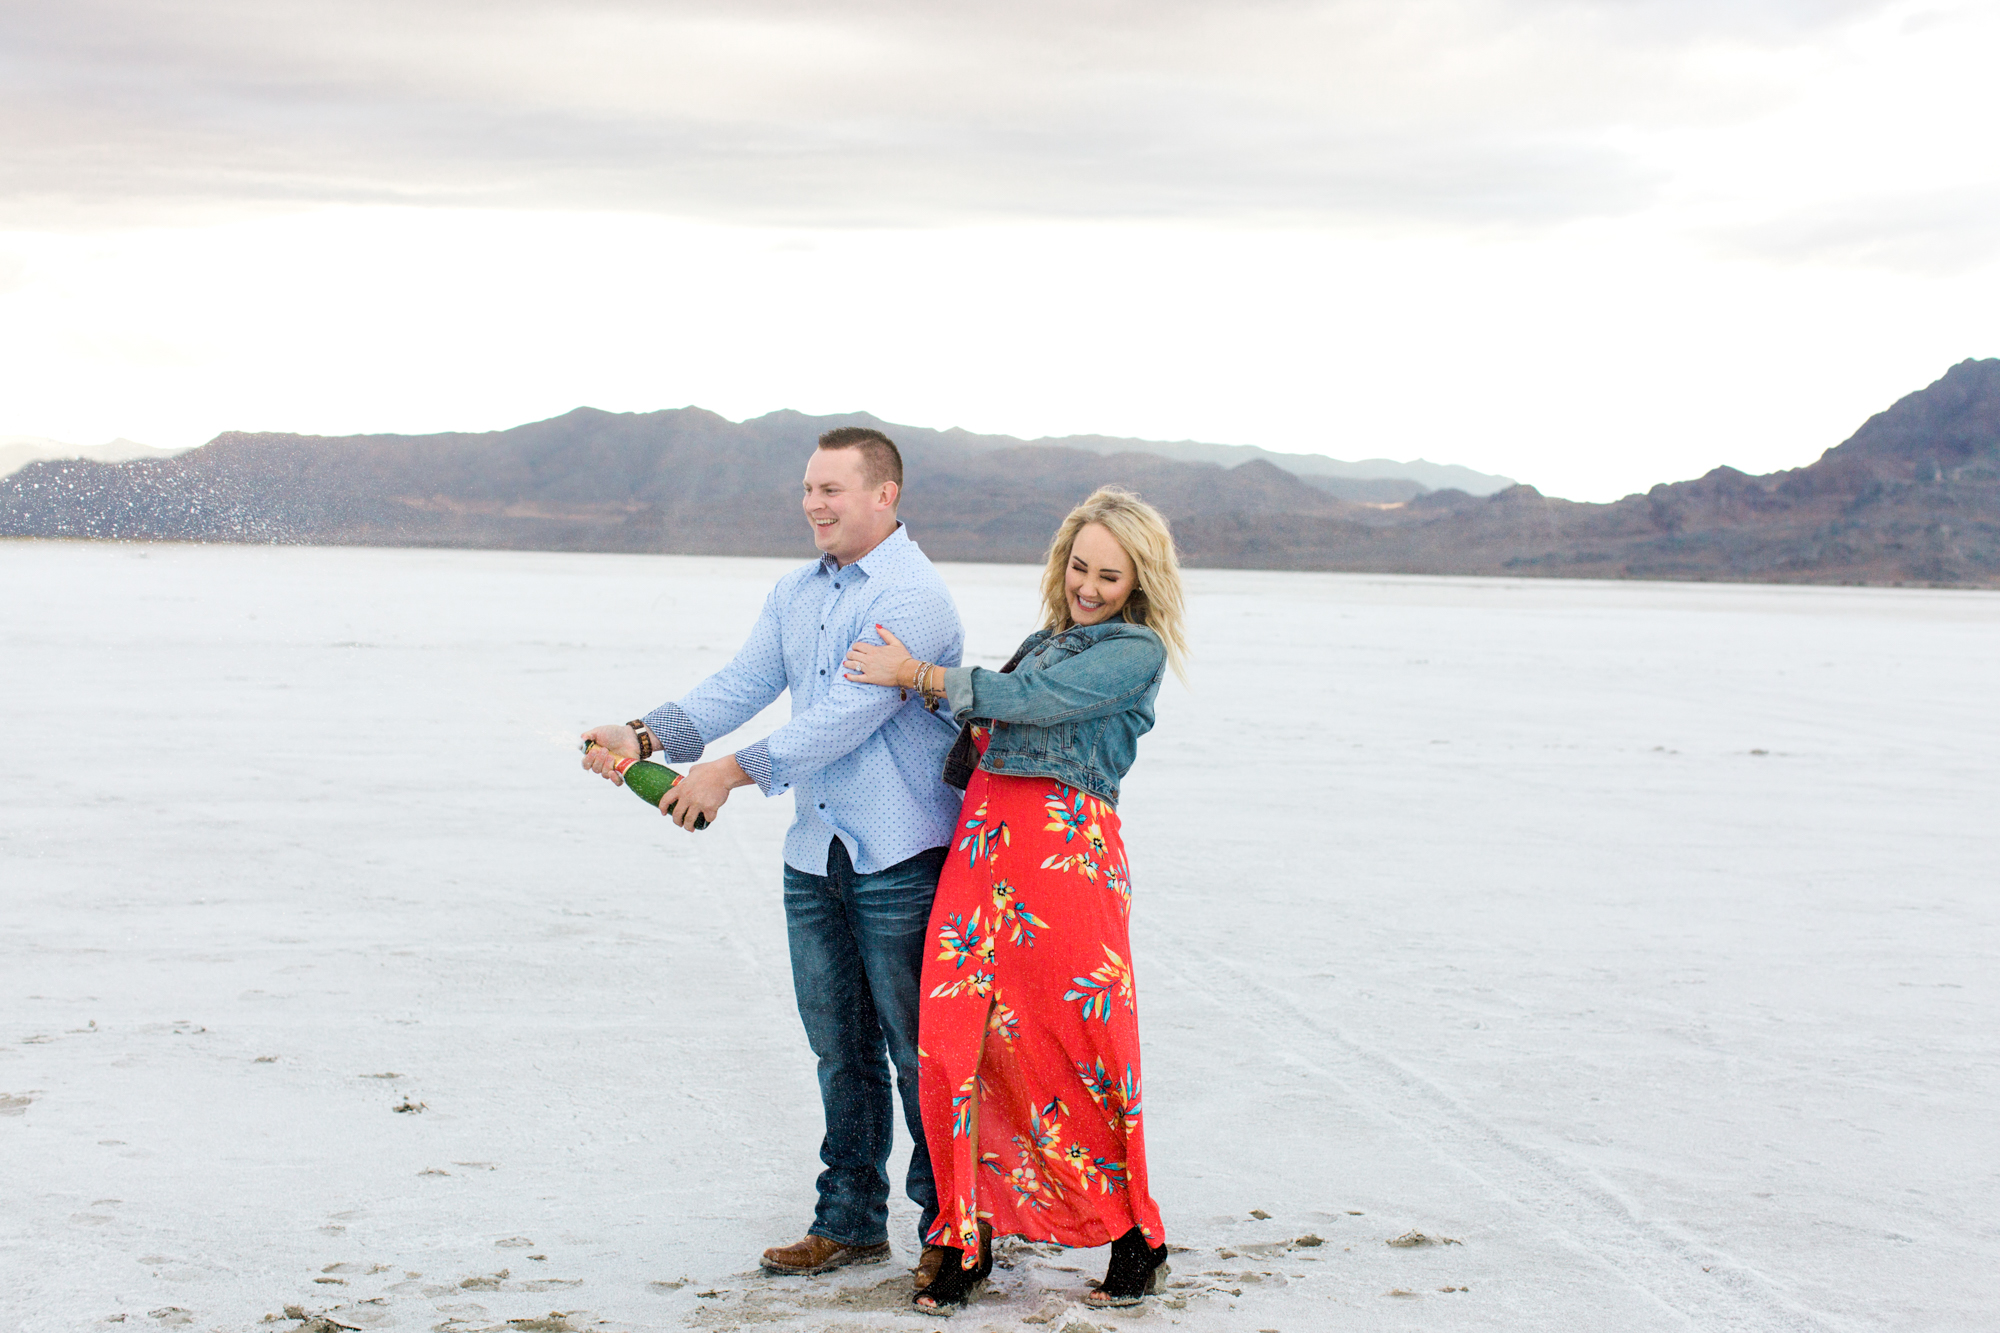 Tara-Mike-Engagements-115.jpg